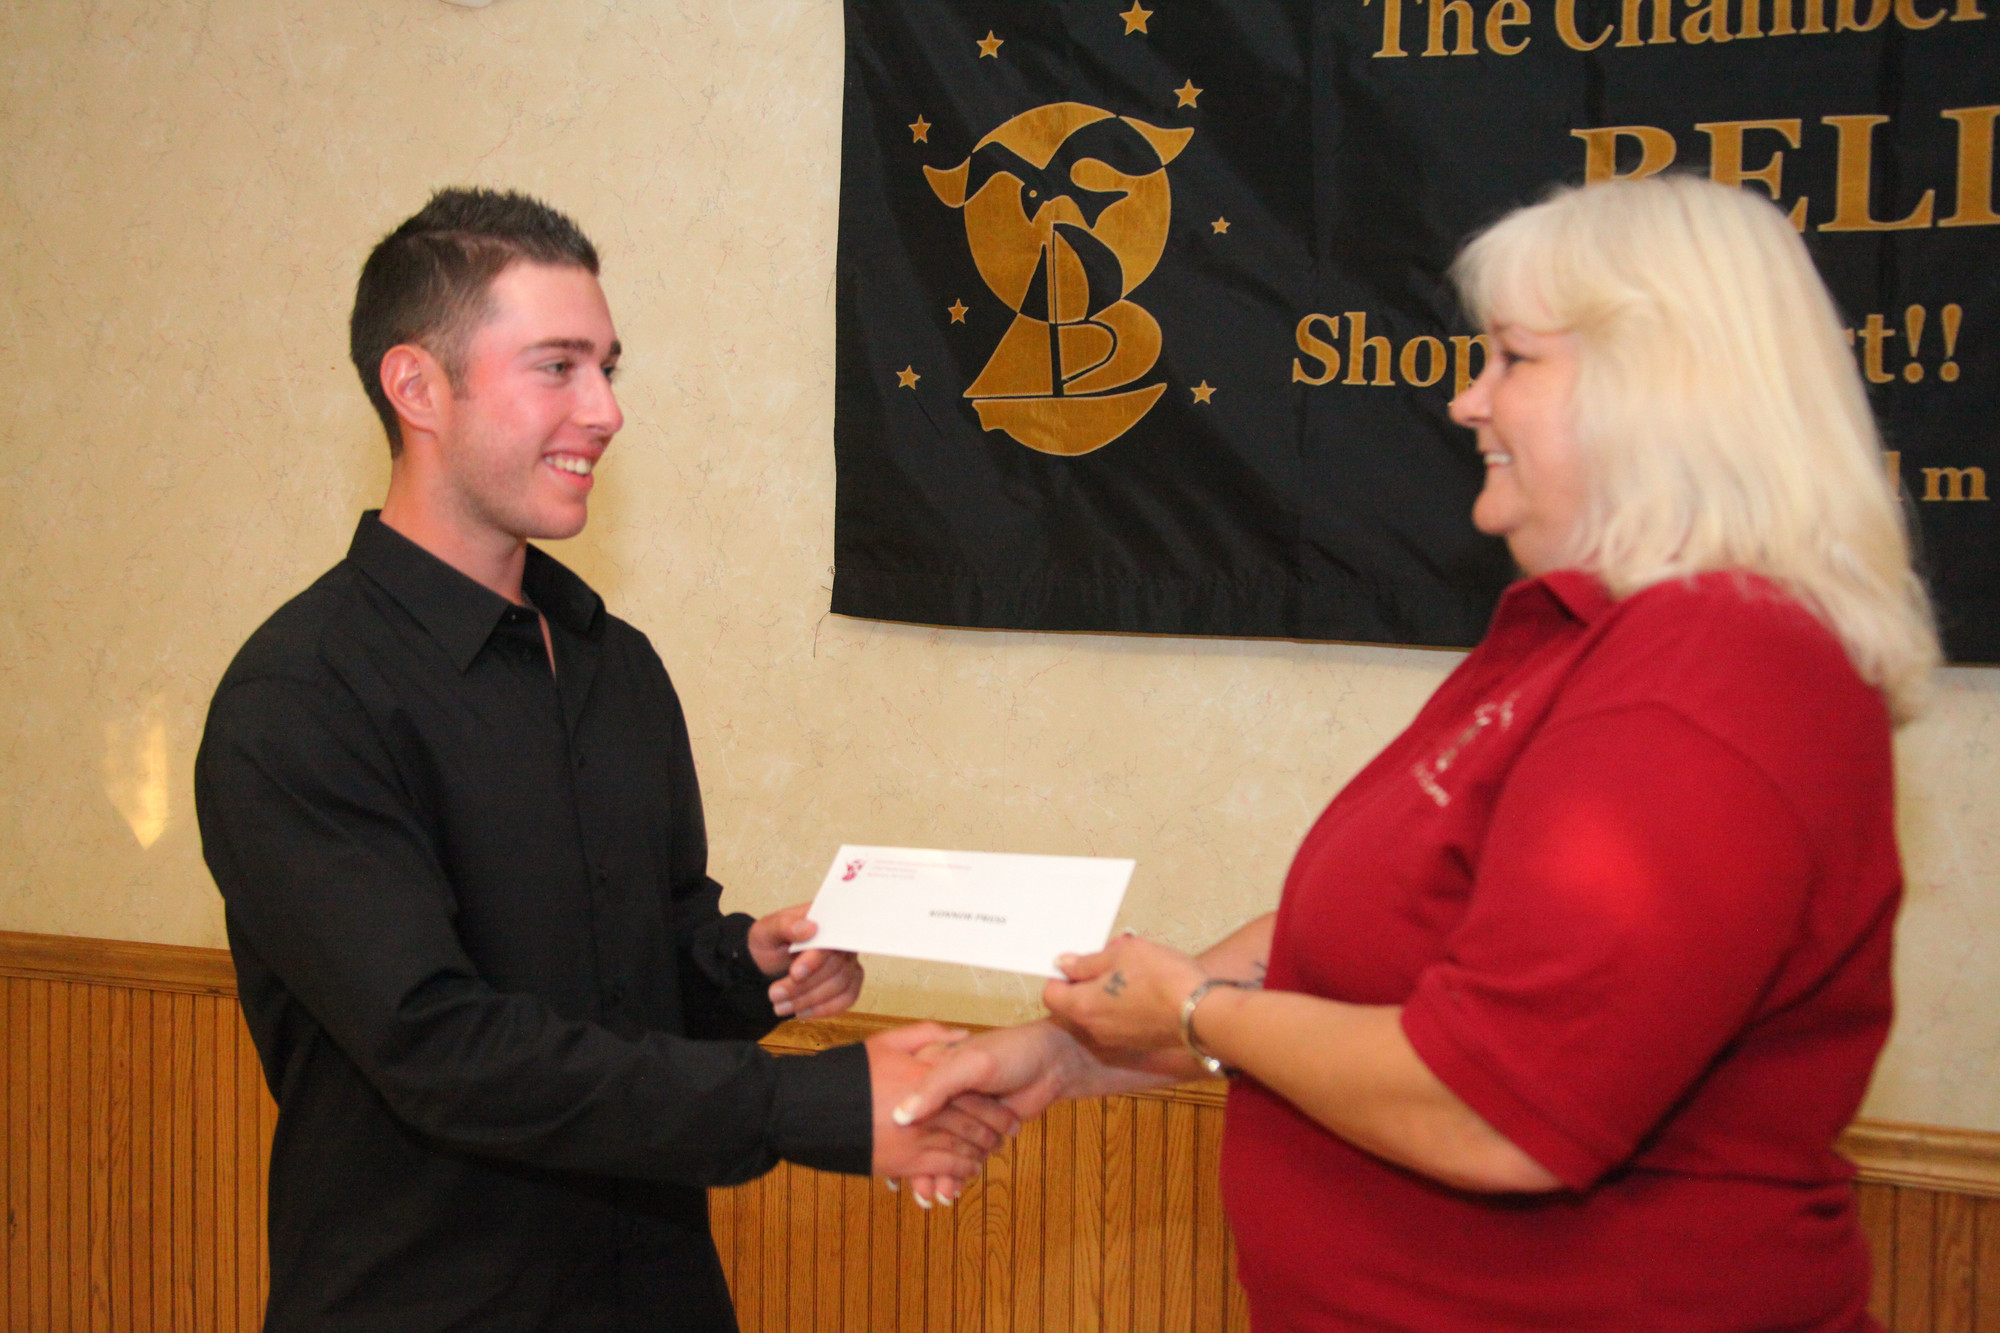 Konnor Press, a Kennedy senior received a scholarship award of $500 towards college tuition from the chamber